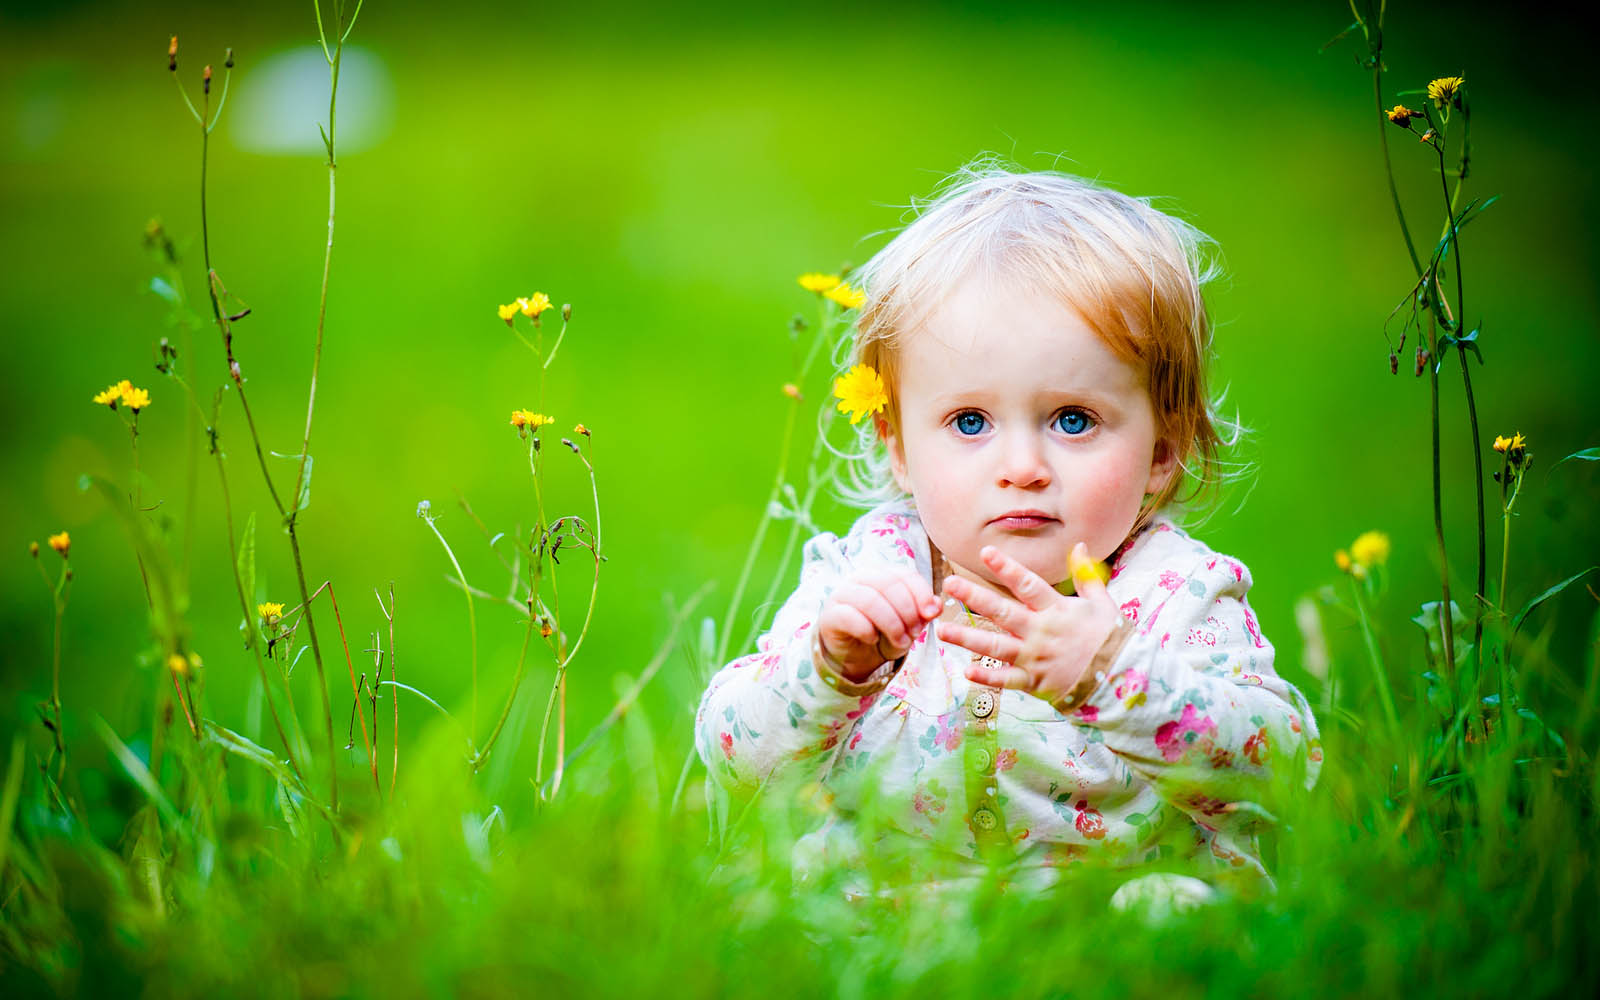 Cute Baby Girl Wallpapers Free Download: Baby Girl Wallpapers:wallpapers Screensavers